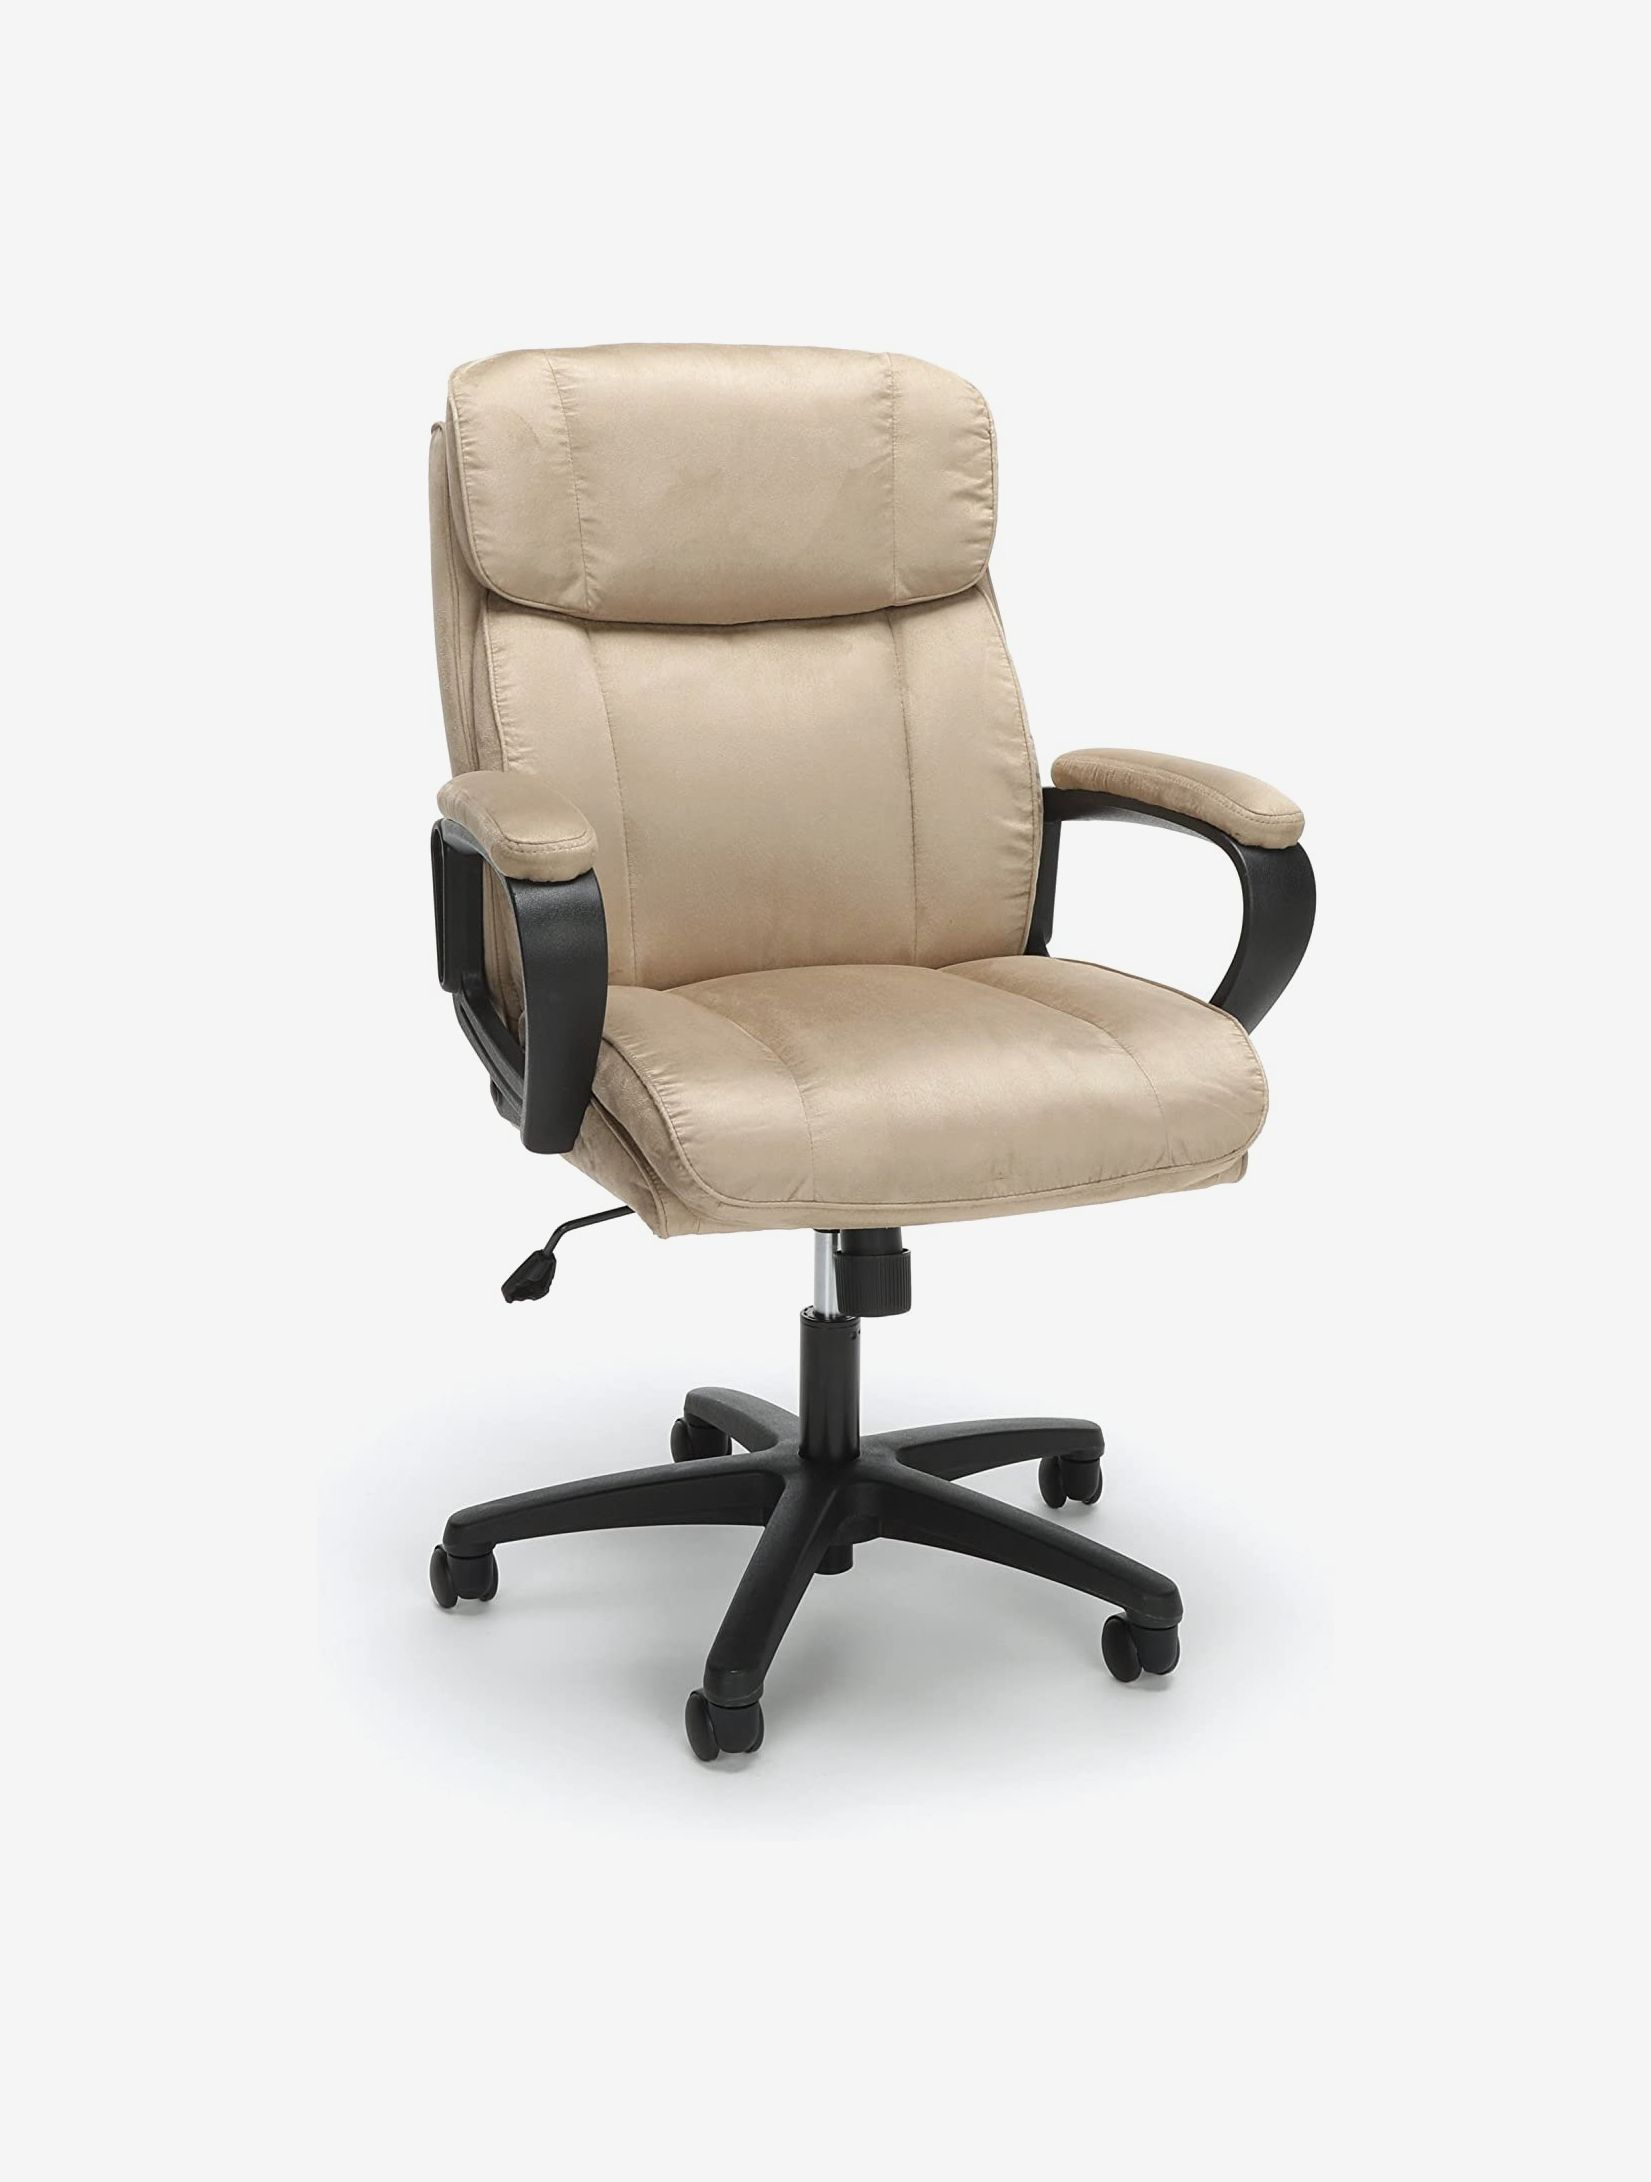 14 Best Office Chairs And Home, Best Executive Desk Chair 2021